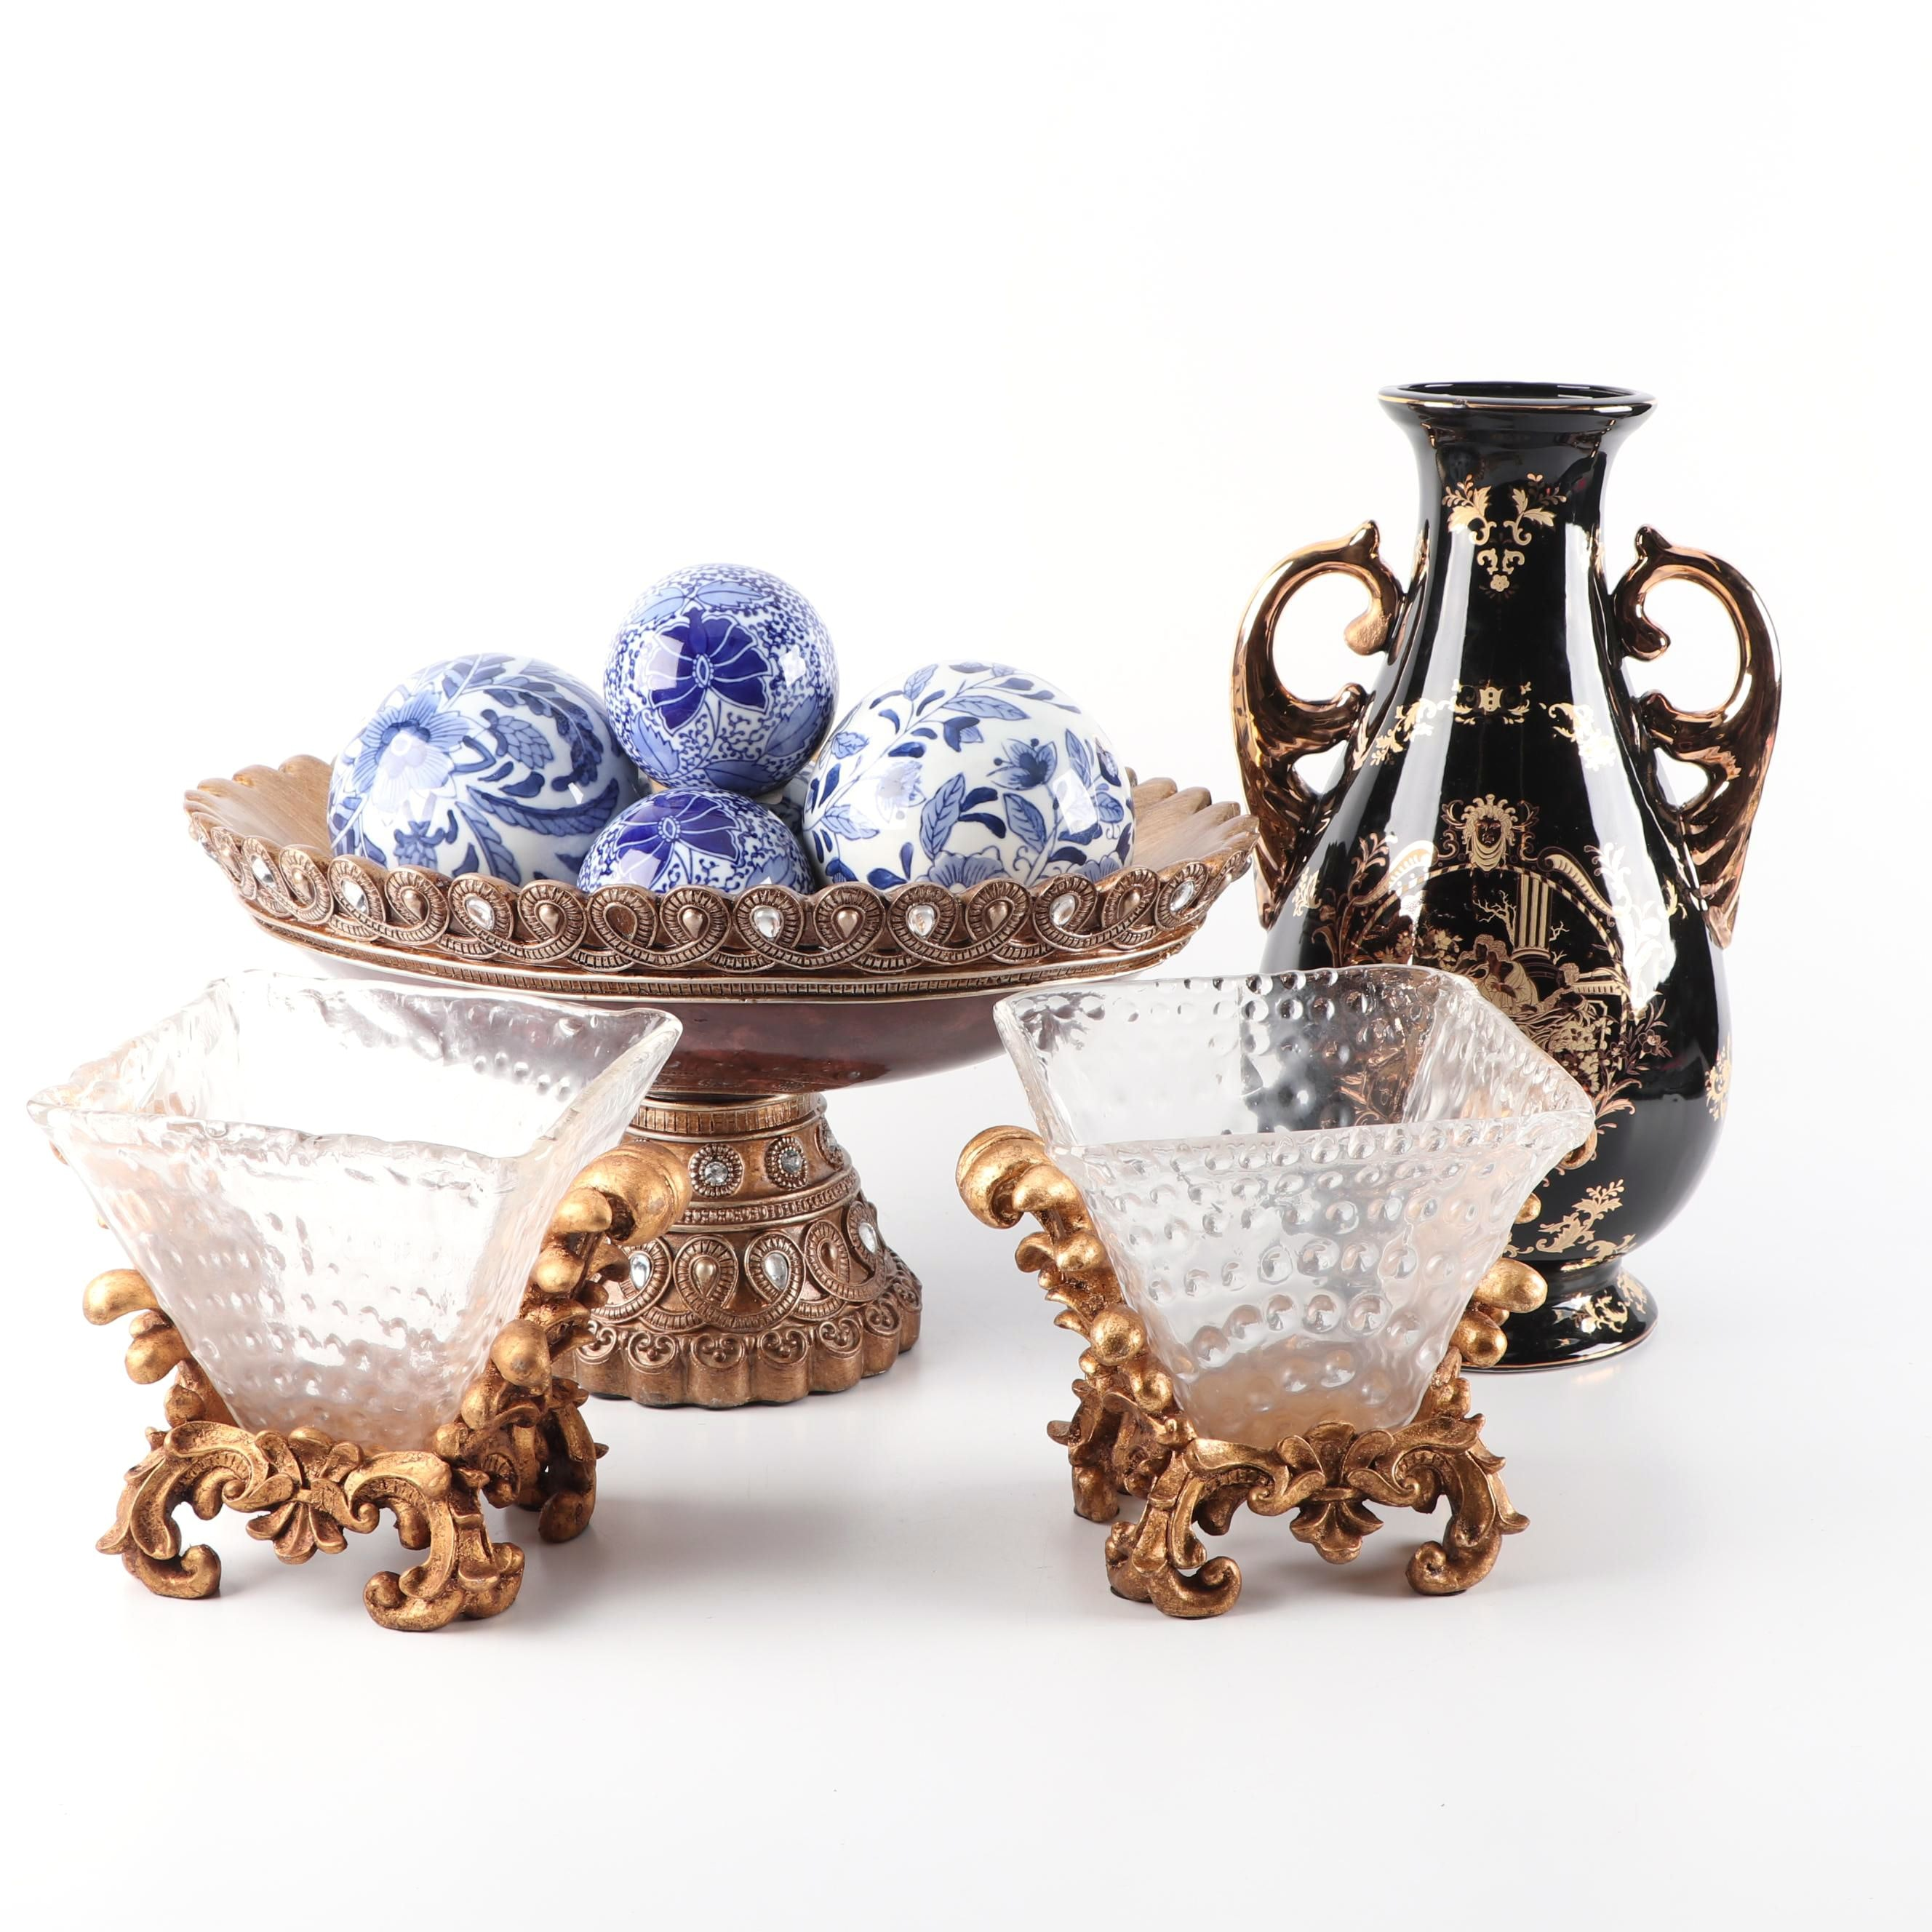 Console Bowls, Vase, and Decorative Orbs